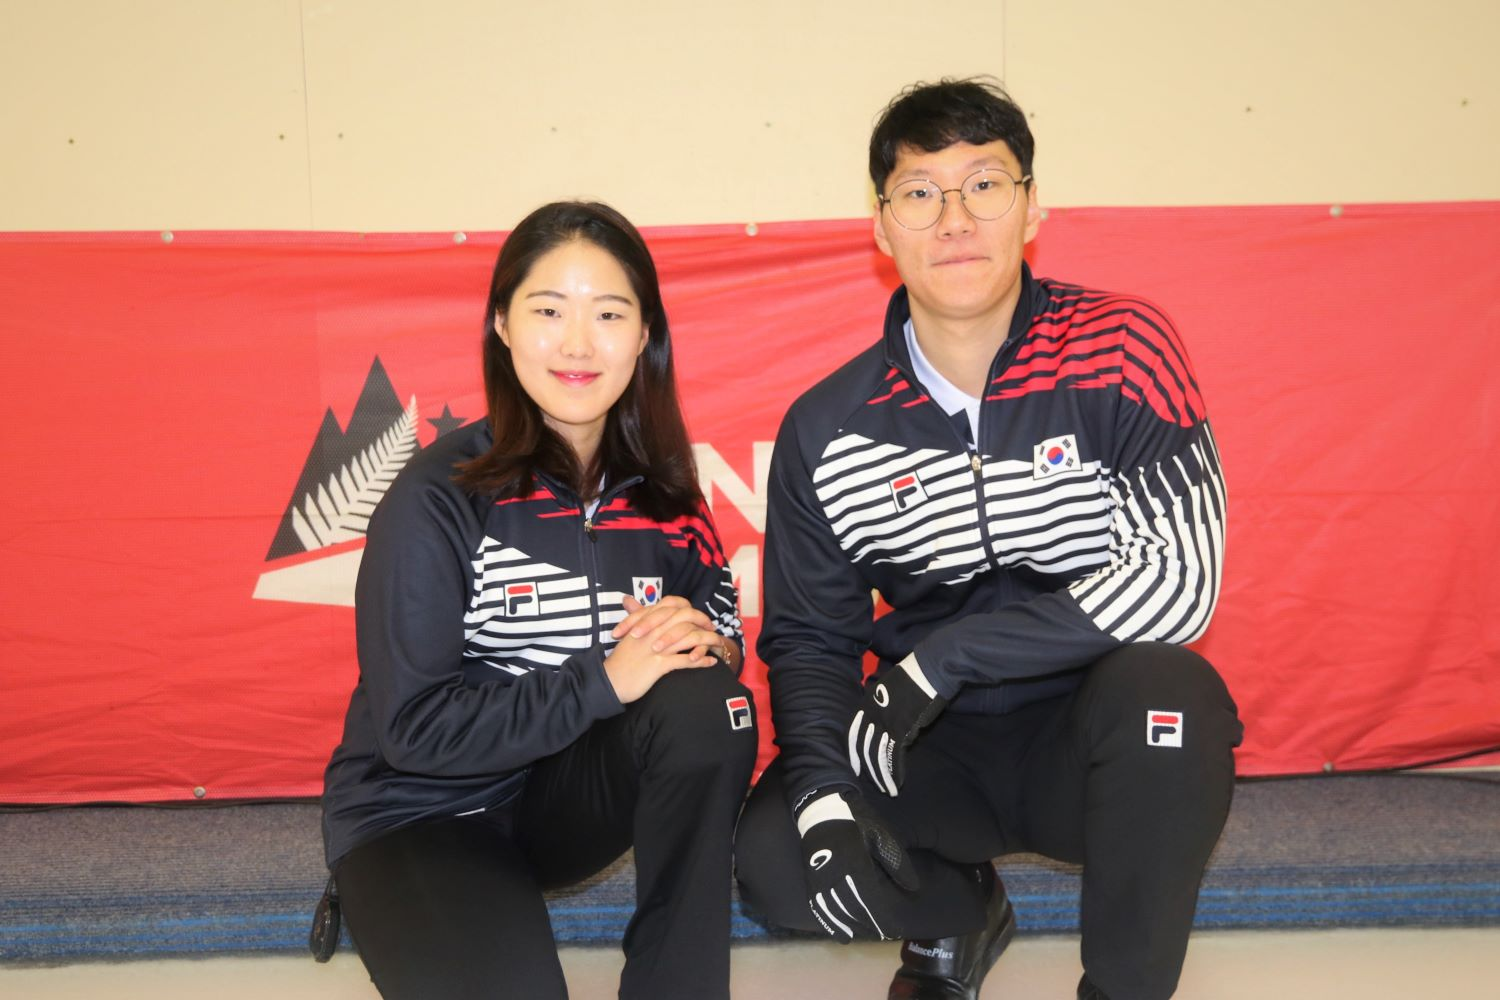 Team Korea - Hyeji Jang and Yujin Seong